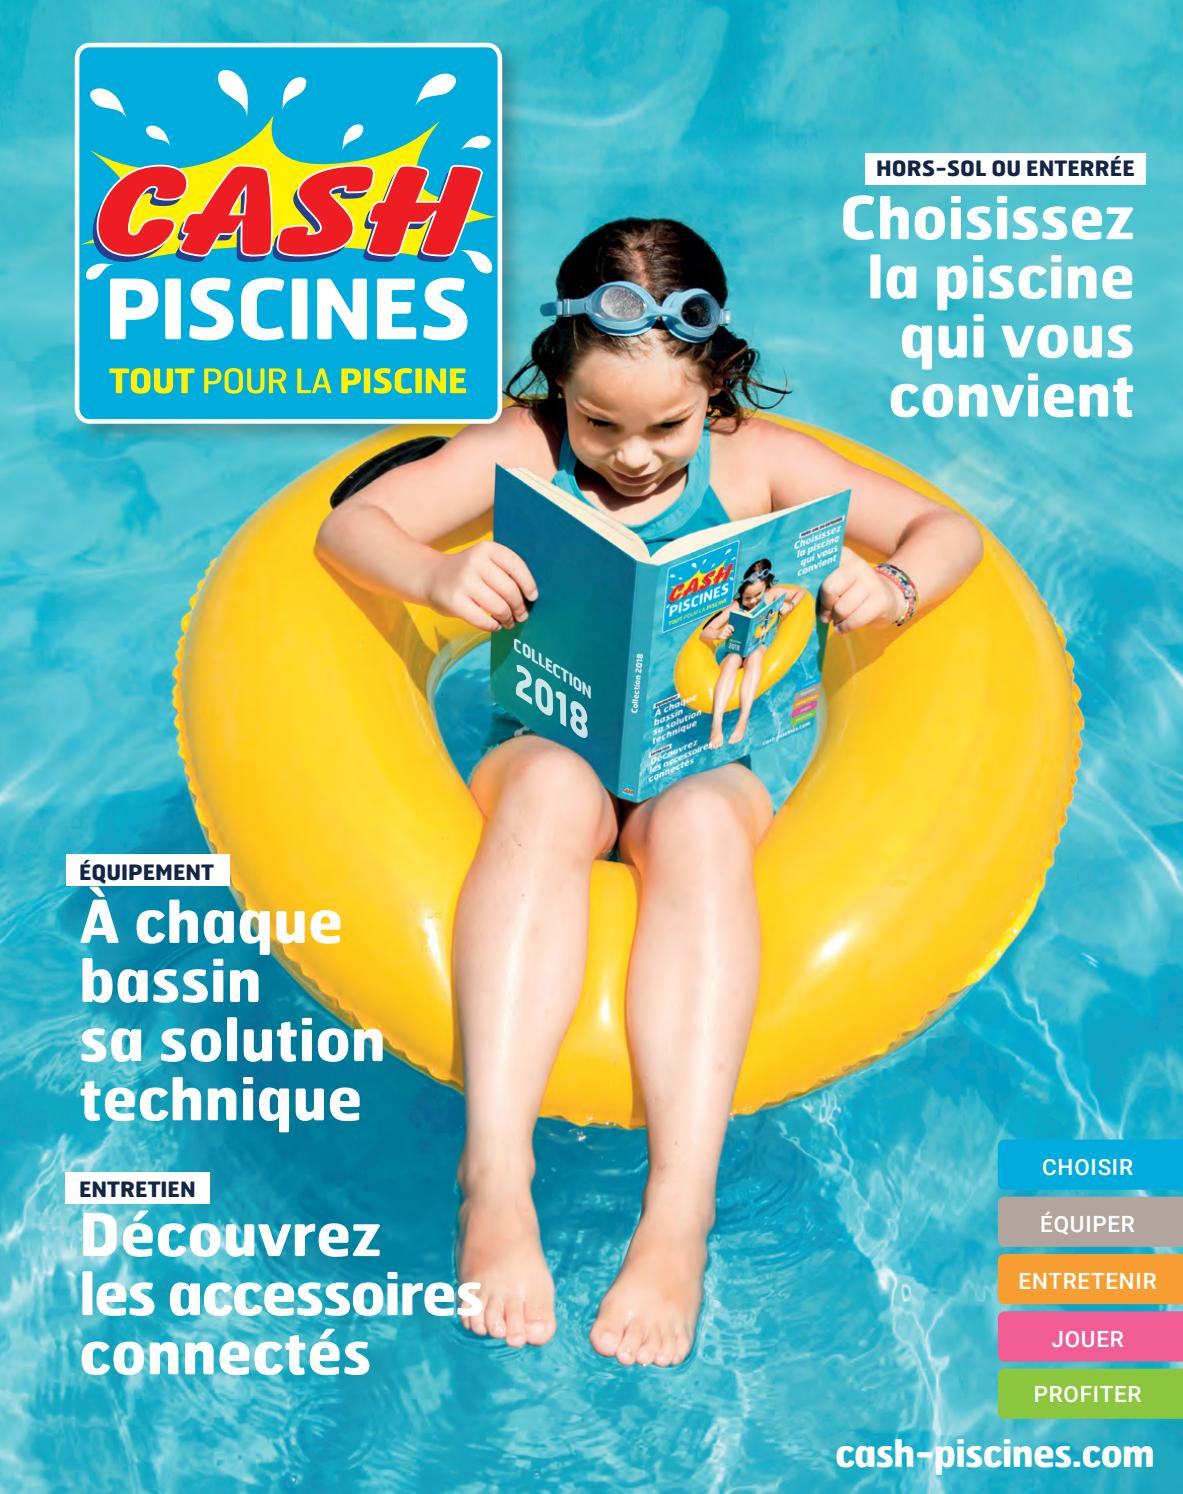 Cash Piscine Sollies Pont : piscine, sollies, Catalogue, Piscine, Octave, Issuu